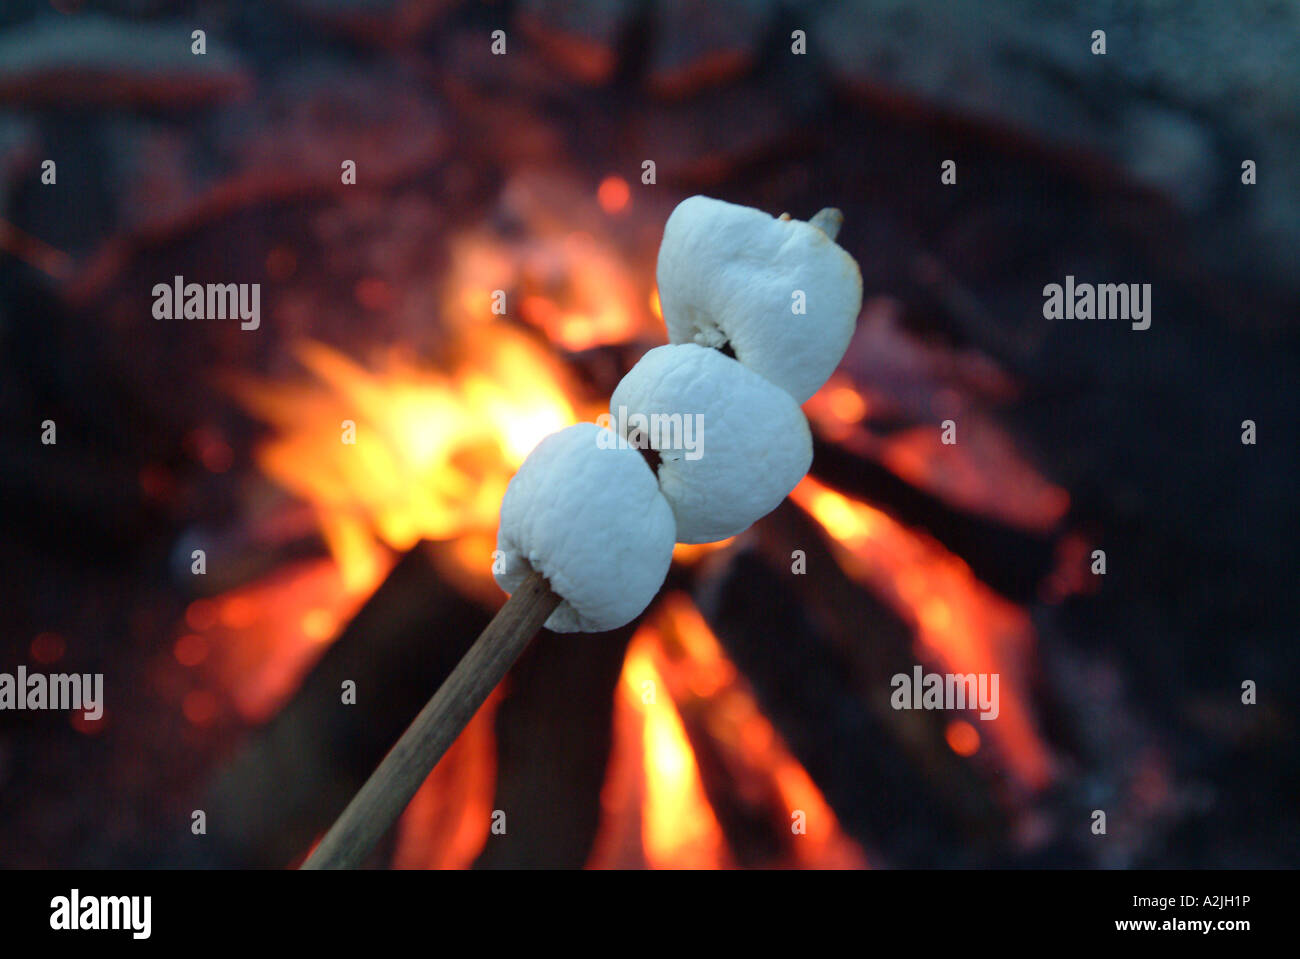 roasting-marshmallows-on-an-open-fire-A2JH1P.jpg